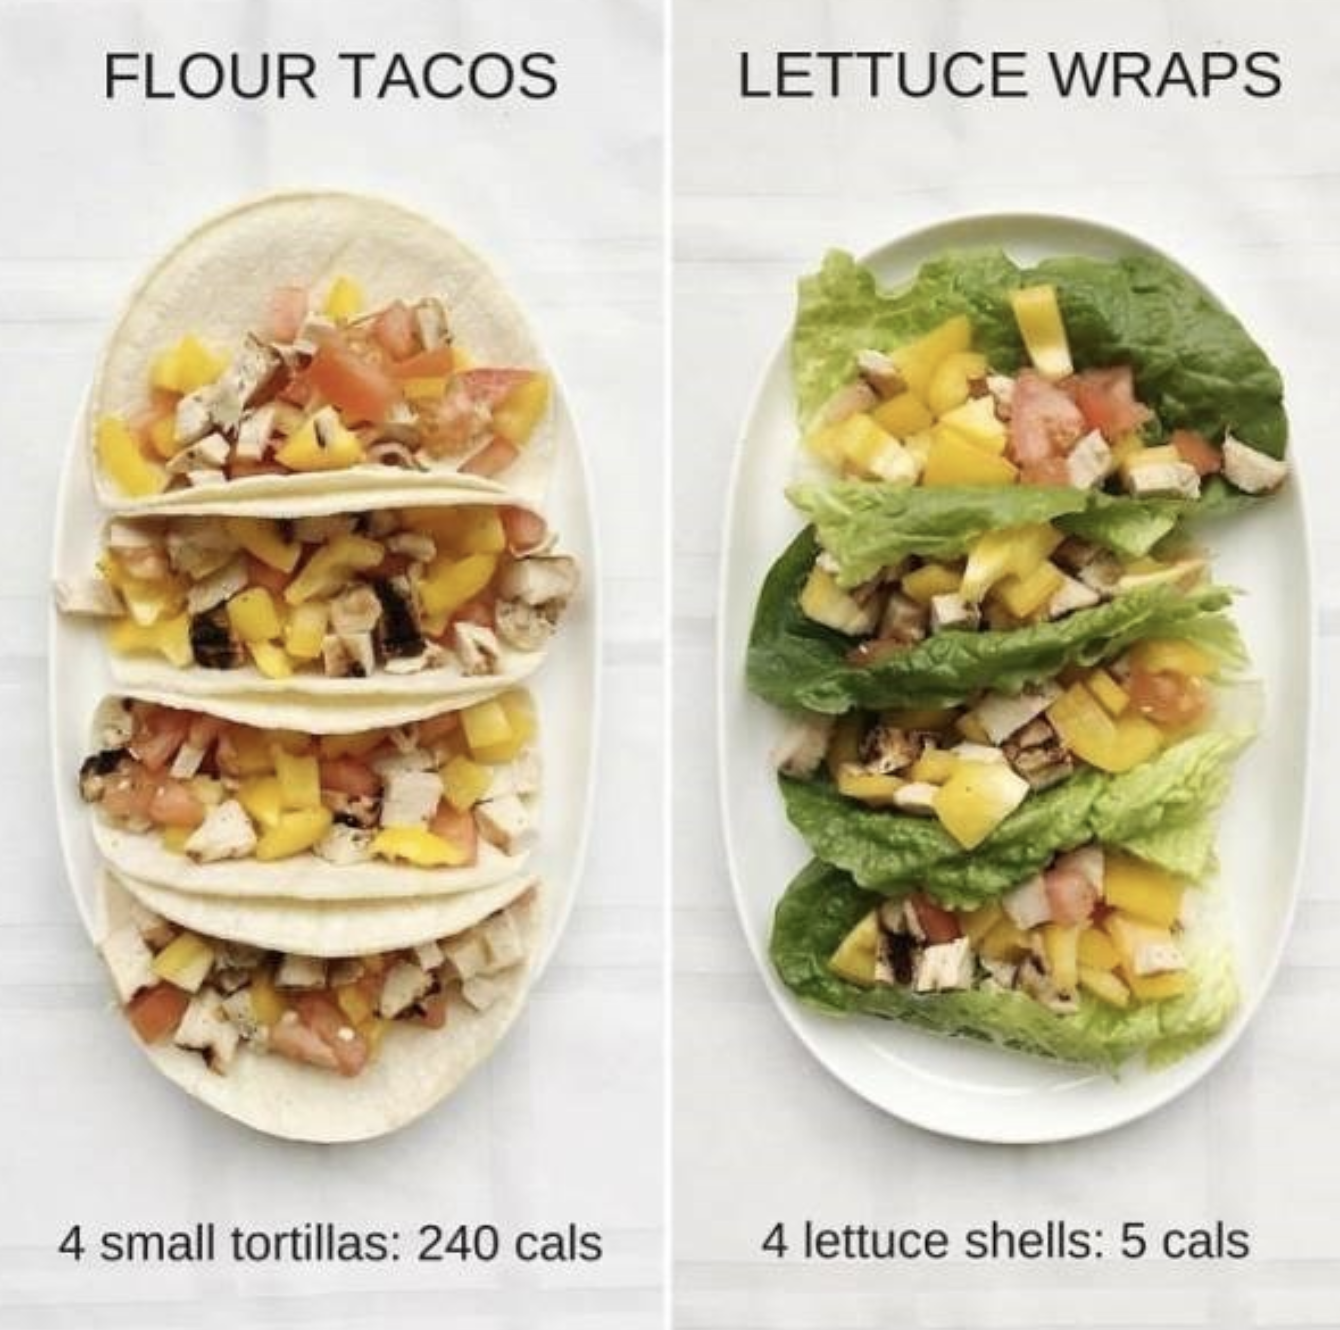 Pin by grace on Healthy (With images) - Healthy tacos..